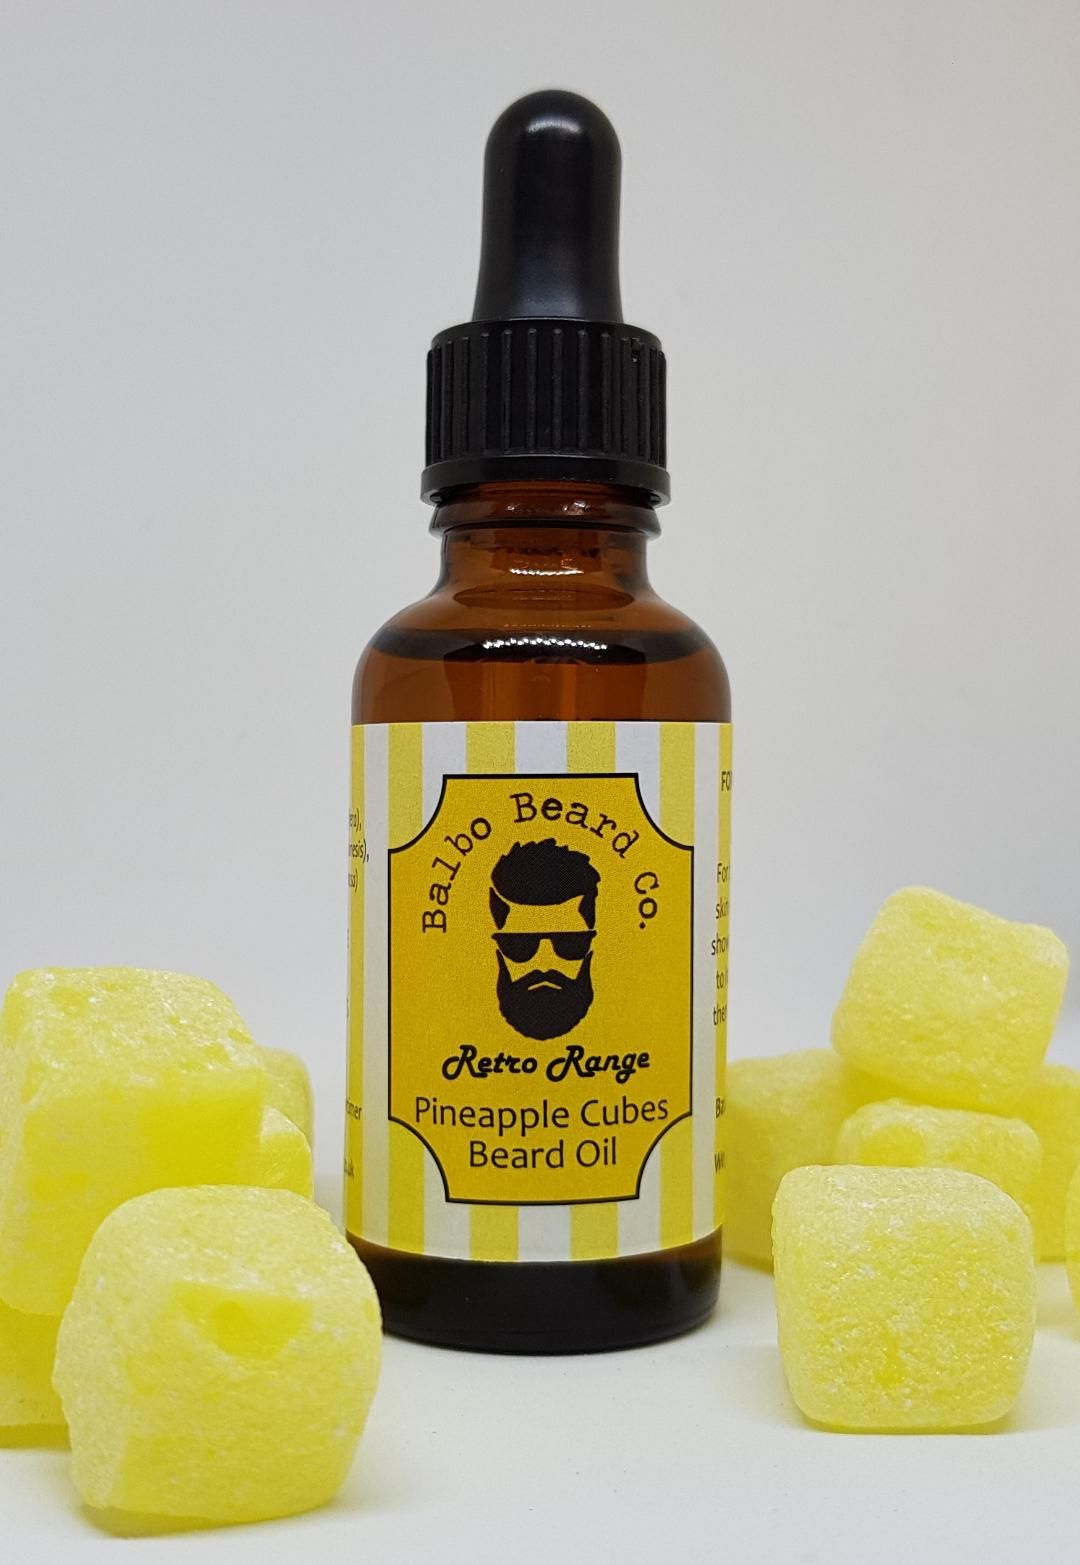 Pineapple Cubes Beard Oil 30ml